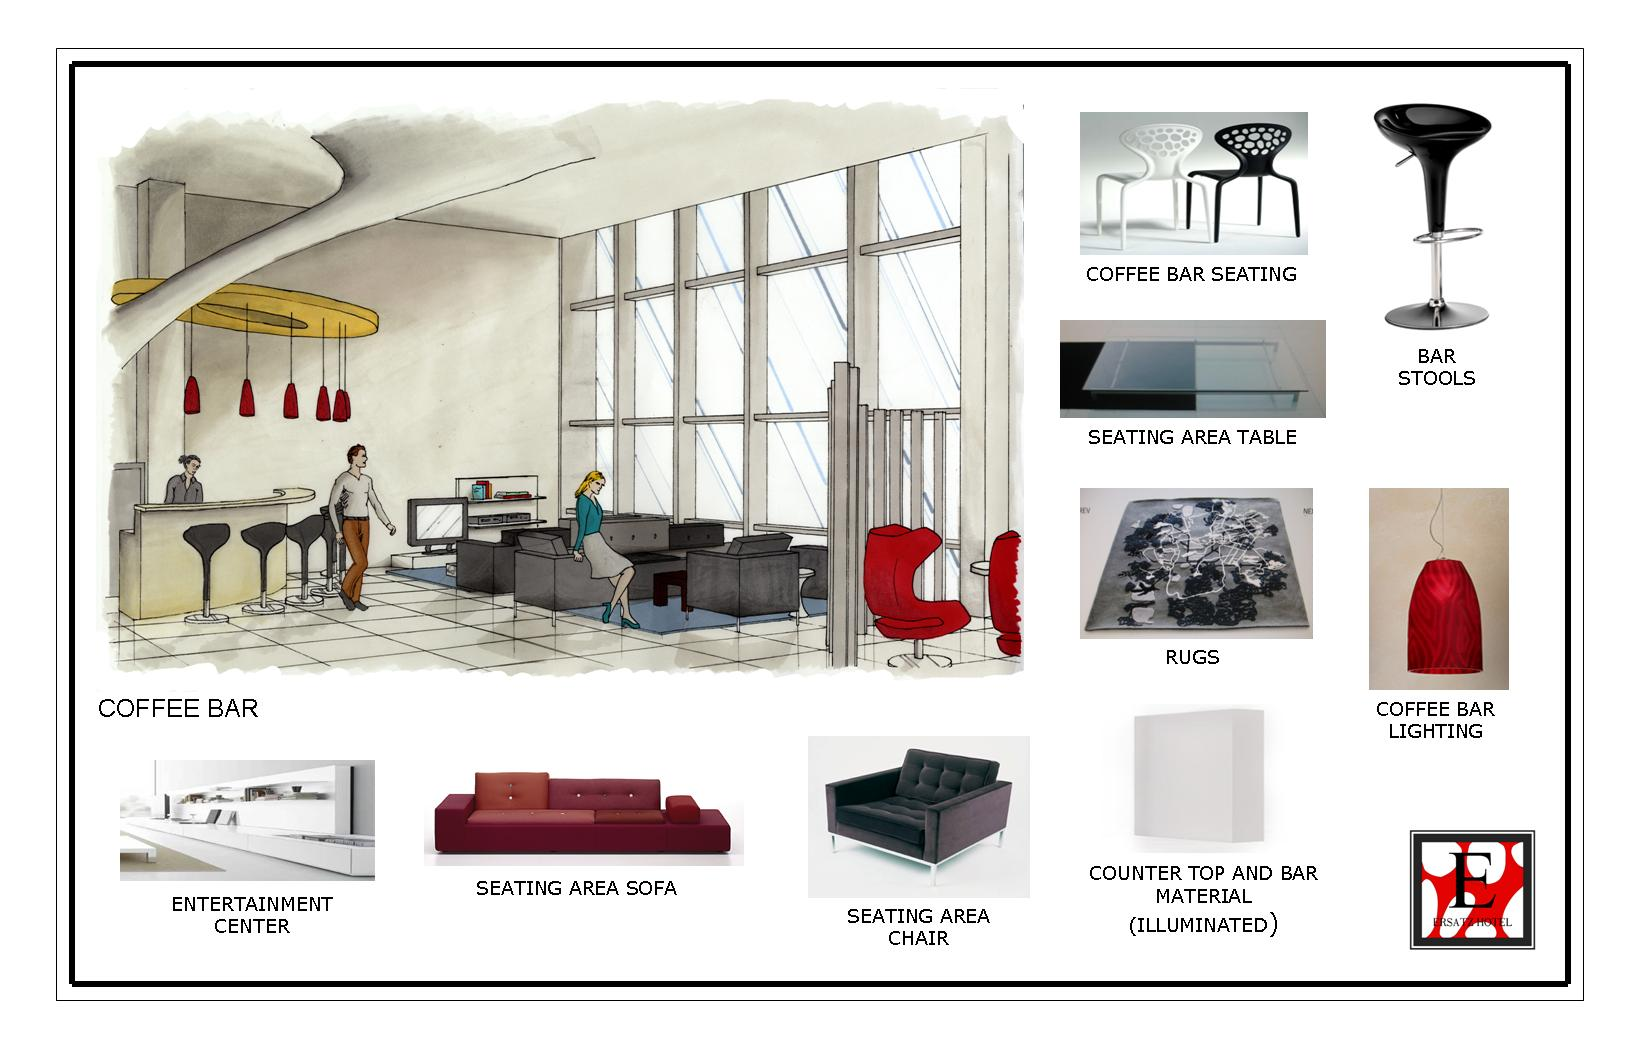 Hotel lobby furniture plan - Hotel Coffee Bar And Materials Perspective Of The Coffee Bar And Seating Area With A Glimpse Of The Concierge Desk On The Far Right Corner